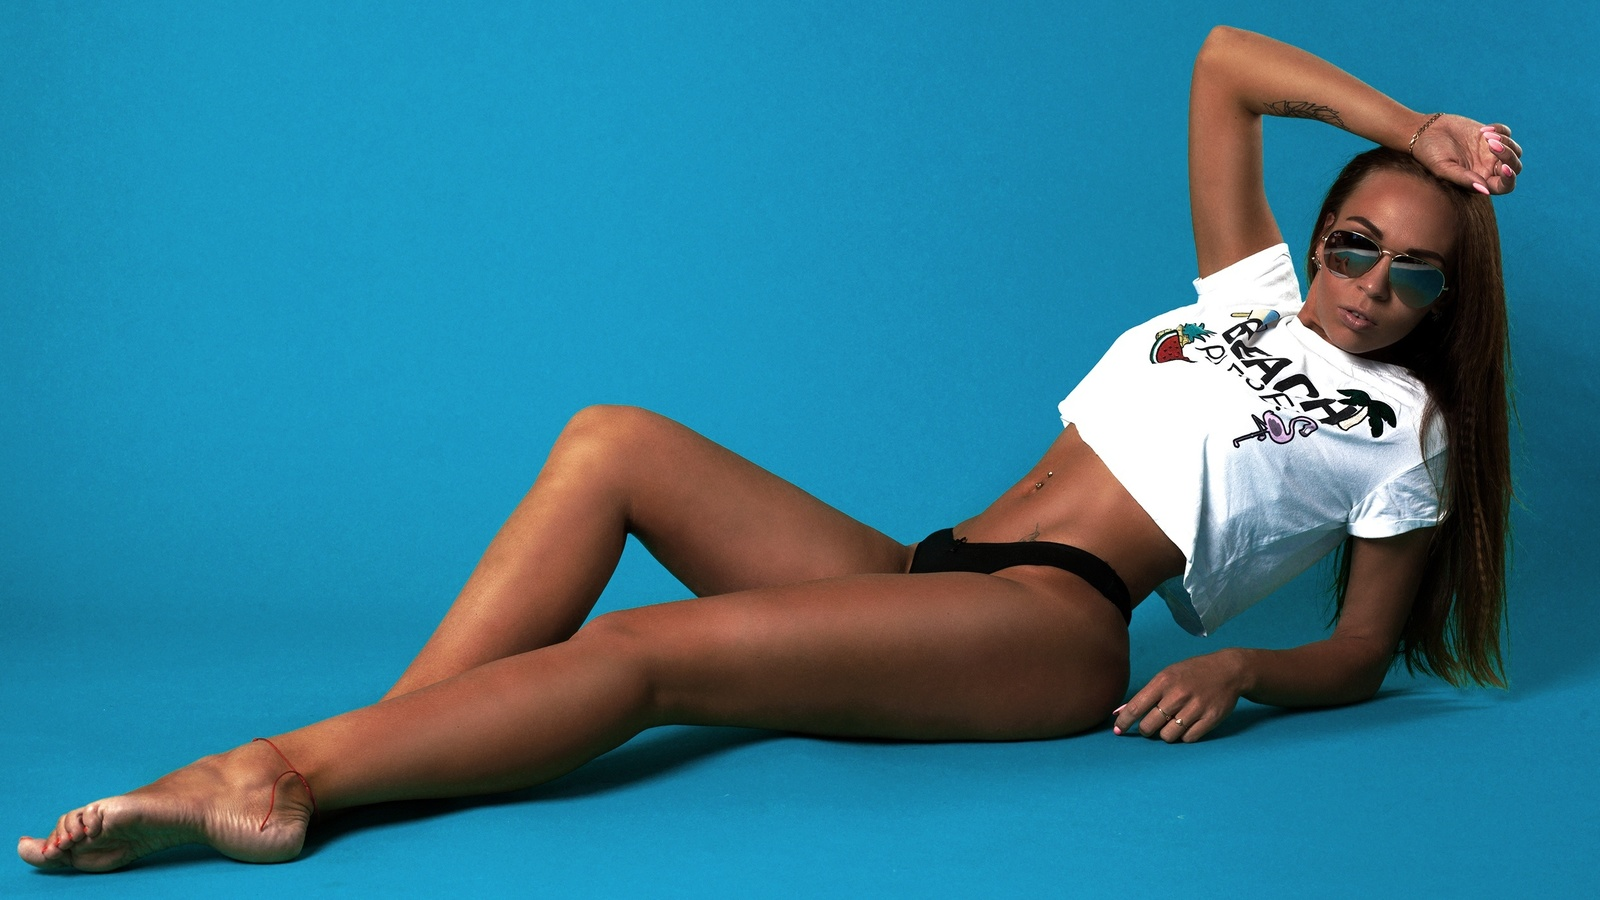 women, tanned, t-shirt, sunglasses, blue background, thong, tattoo, belly, pierced navel, pink nails